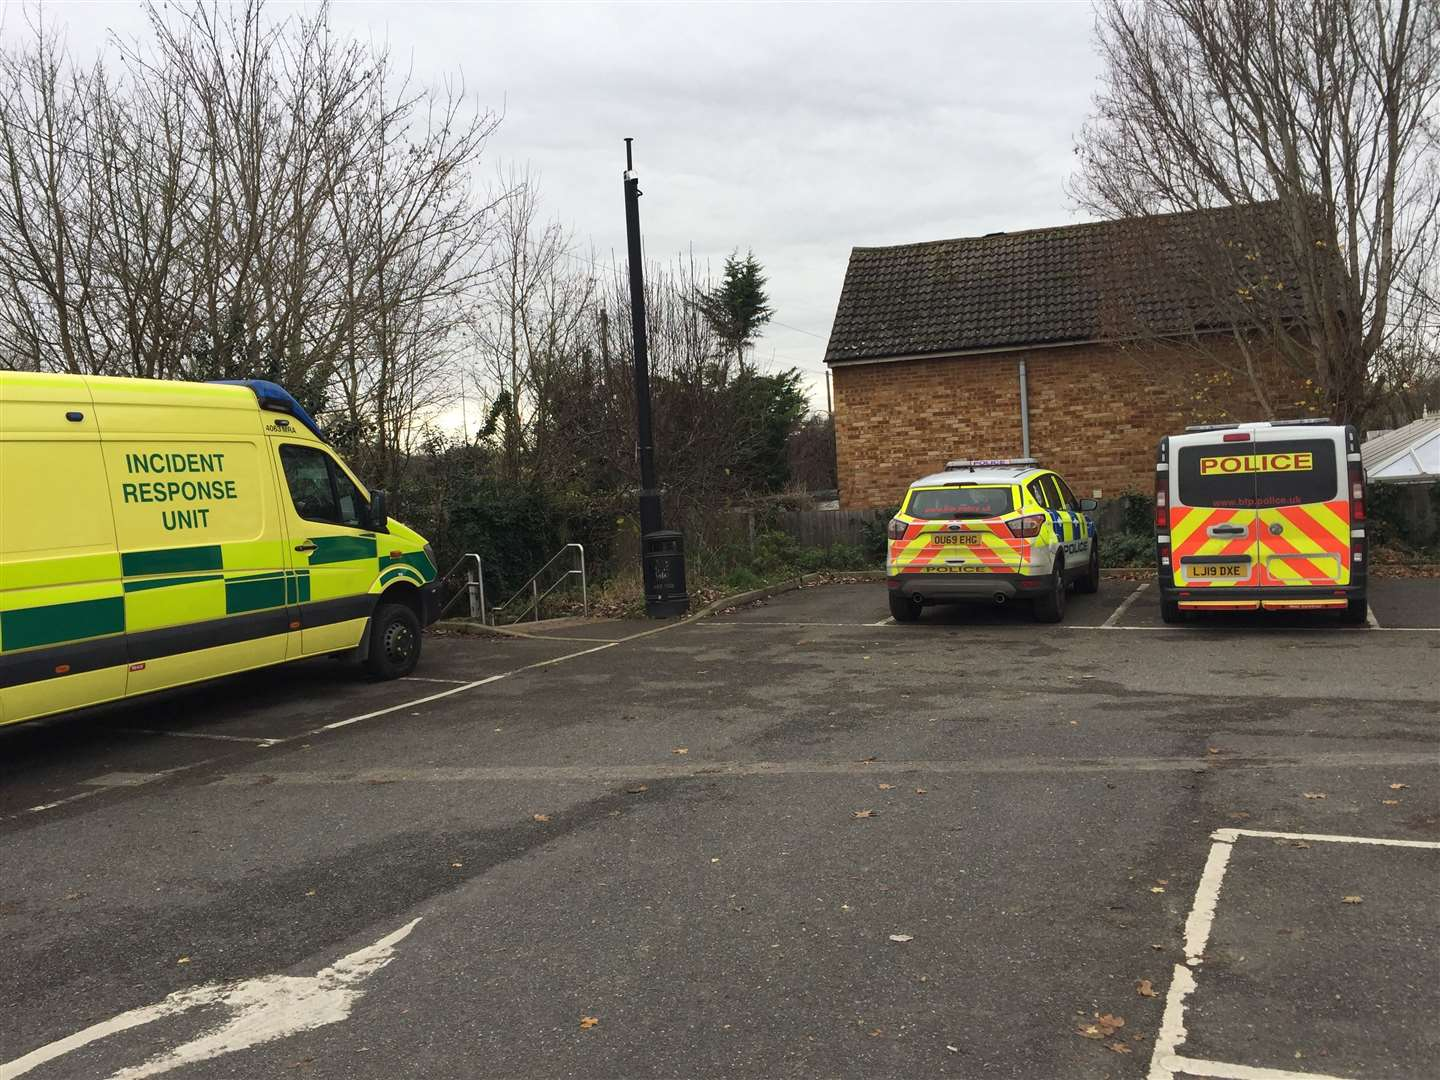 Police, paramedics and the rescue team are at the scene in West Malling